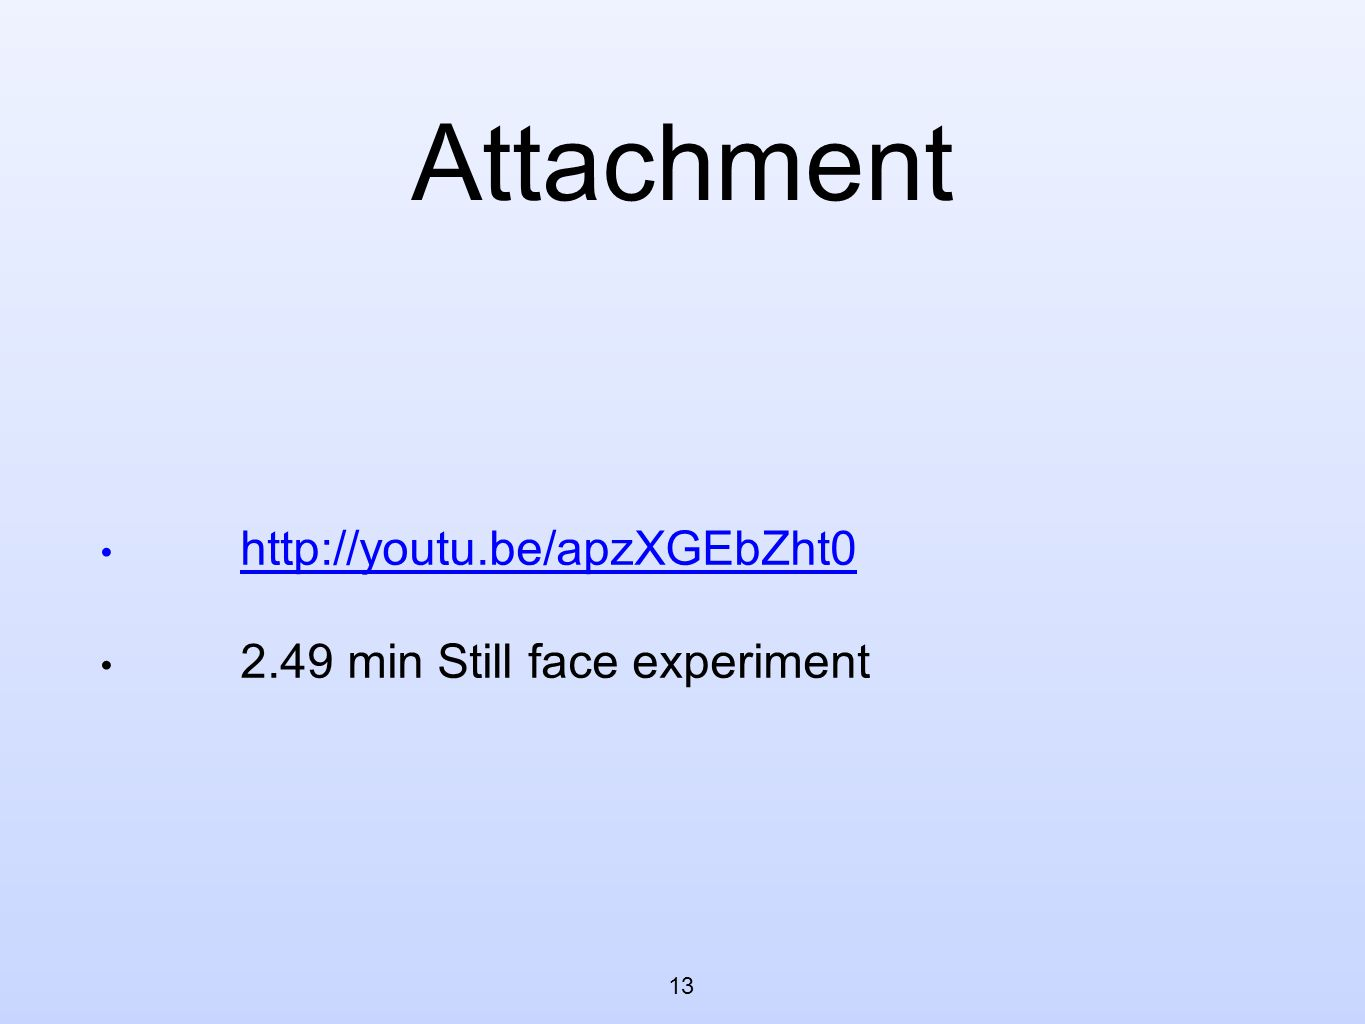 Attachment http://youtu.be/apzXGEbZht0 2.49 min Still face experiment